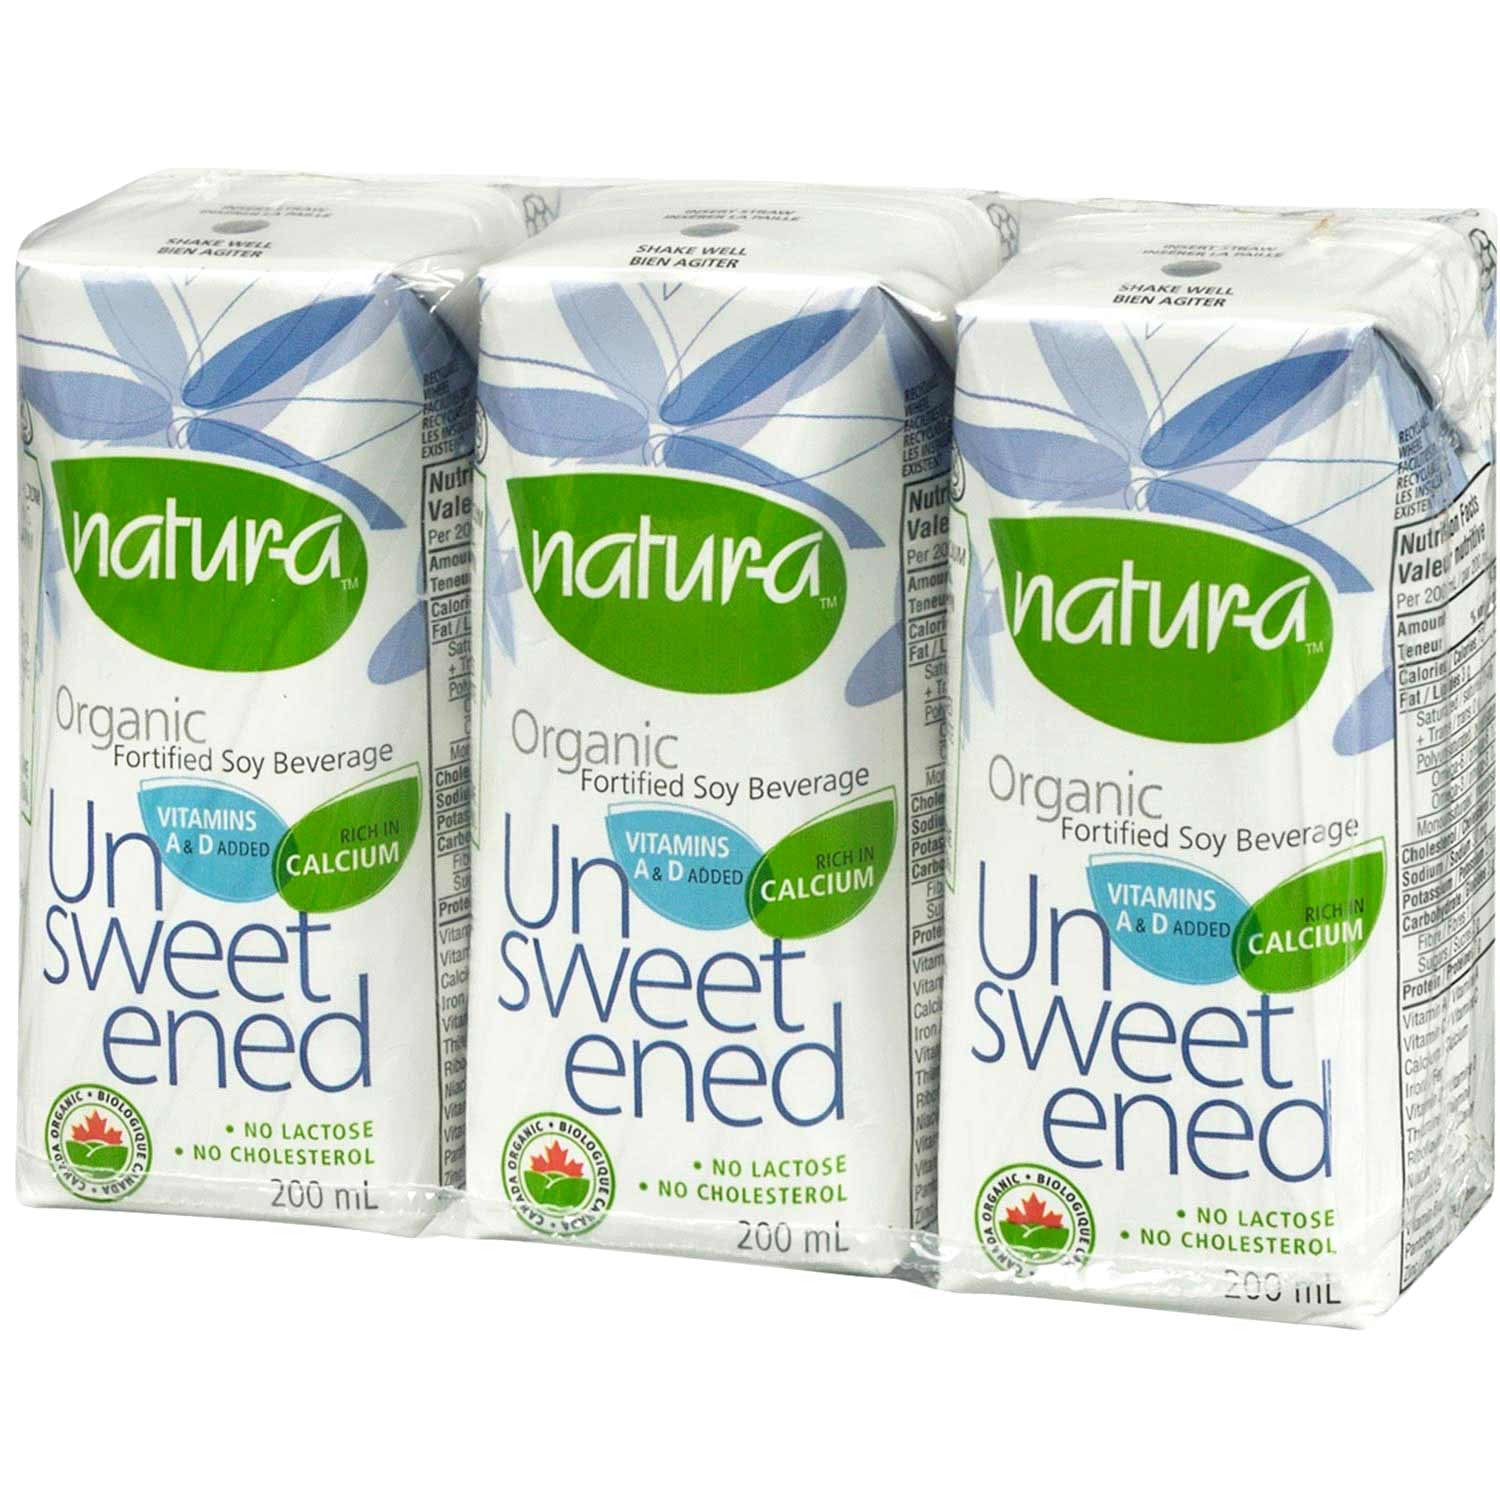 Natur-a Enriched Soy Beverage - Unsweetened (Organic), 200 ml.-NaturesWisdom